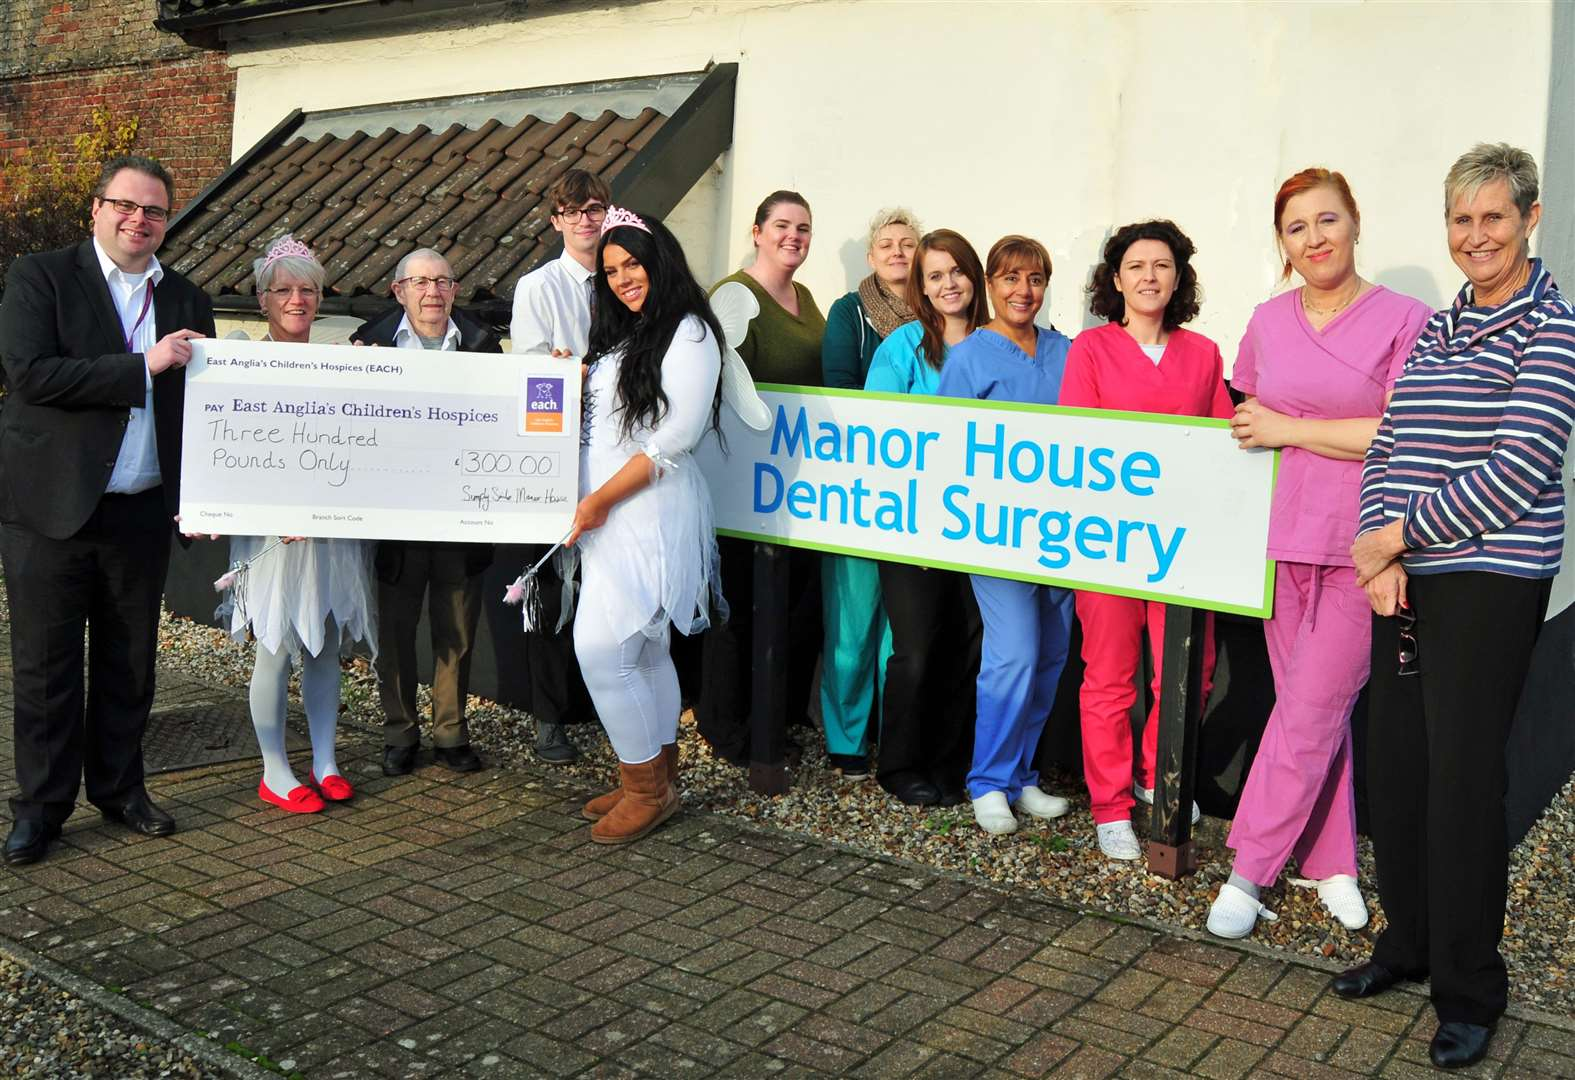 Tooth fairies give charity cash injection